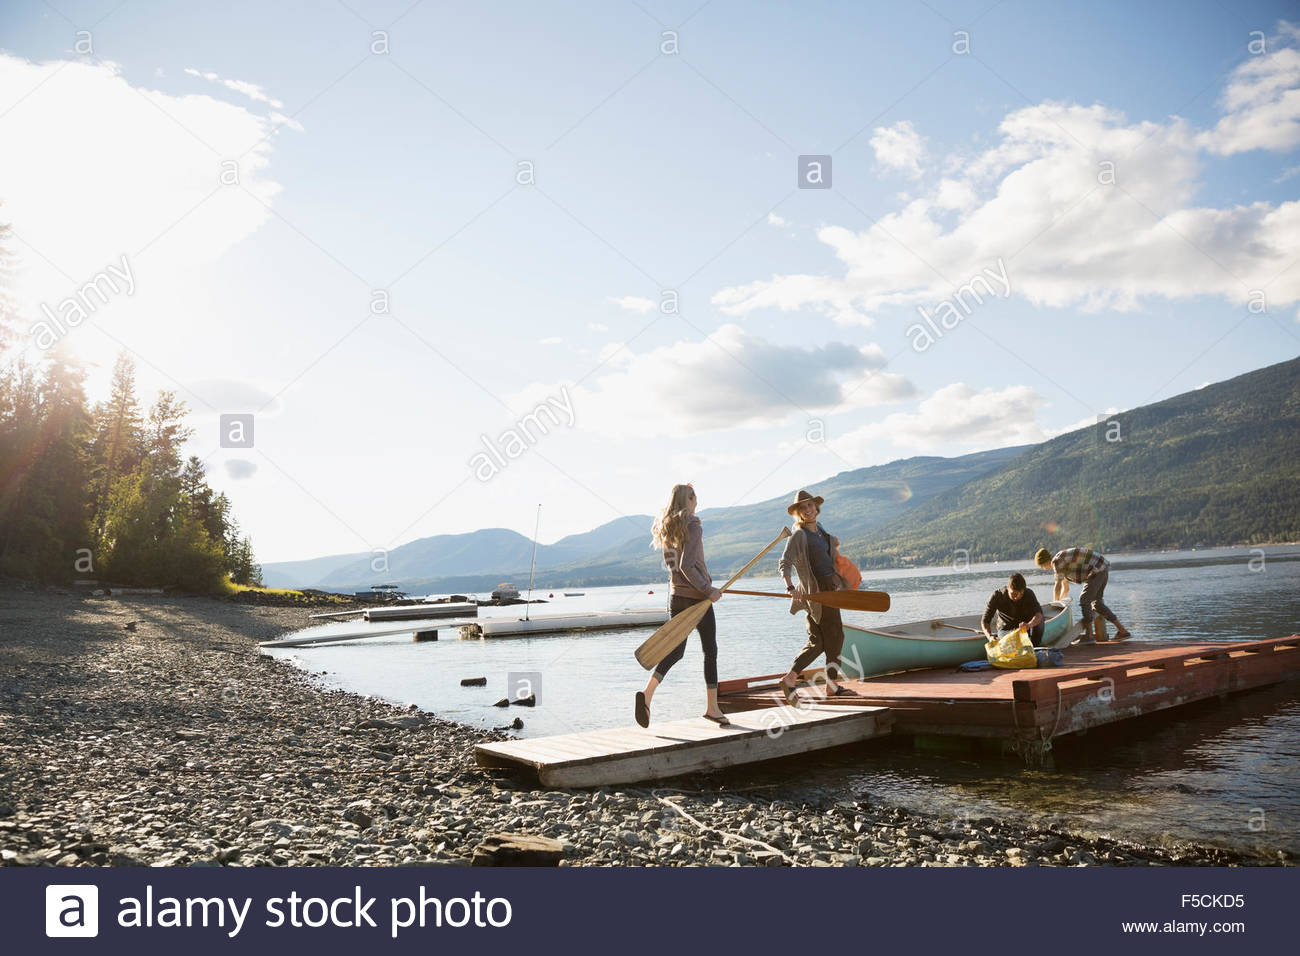 Young friends canoe and paddles on lake dock - Stock Image